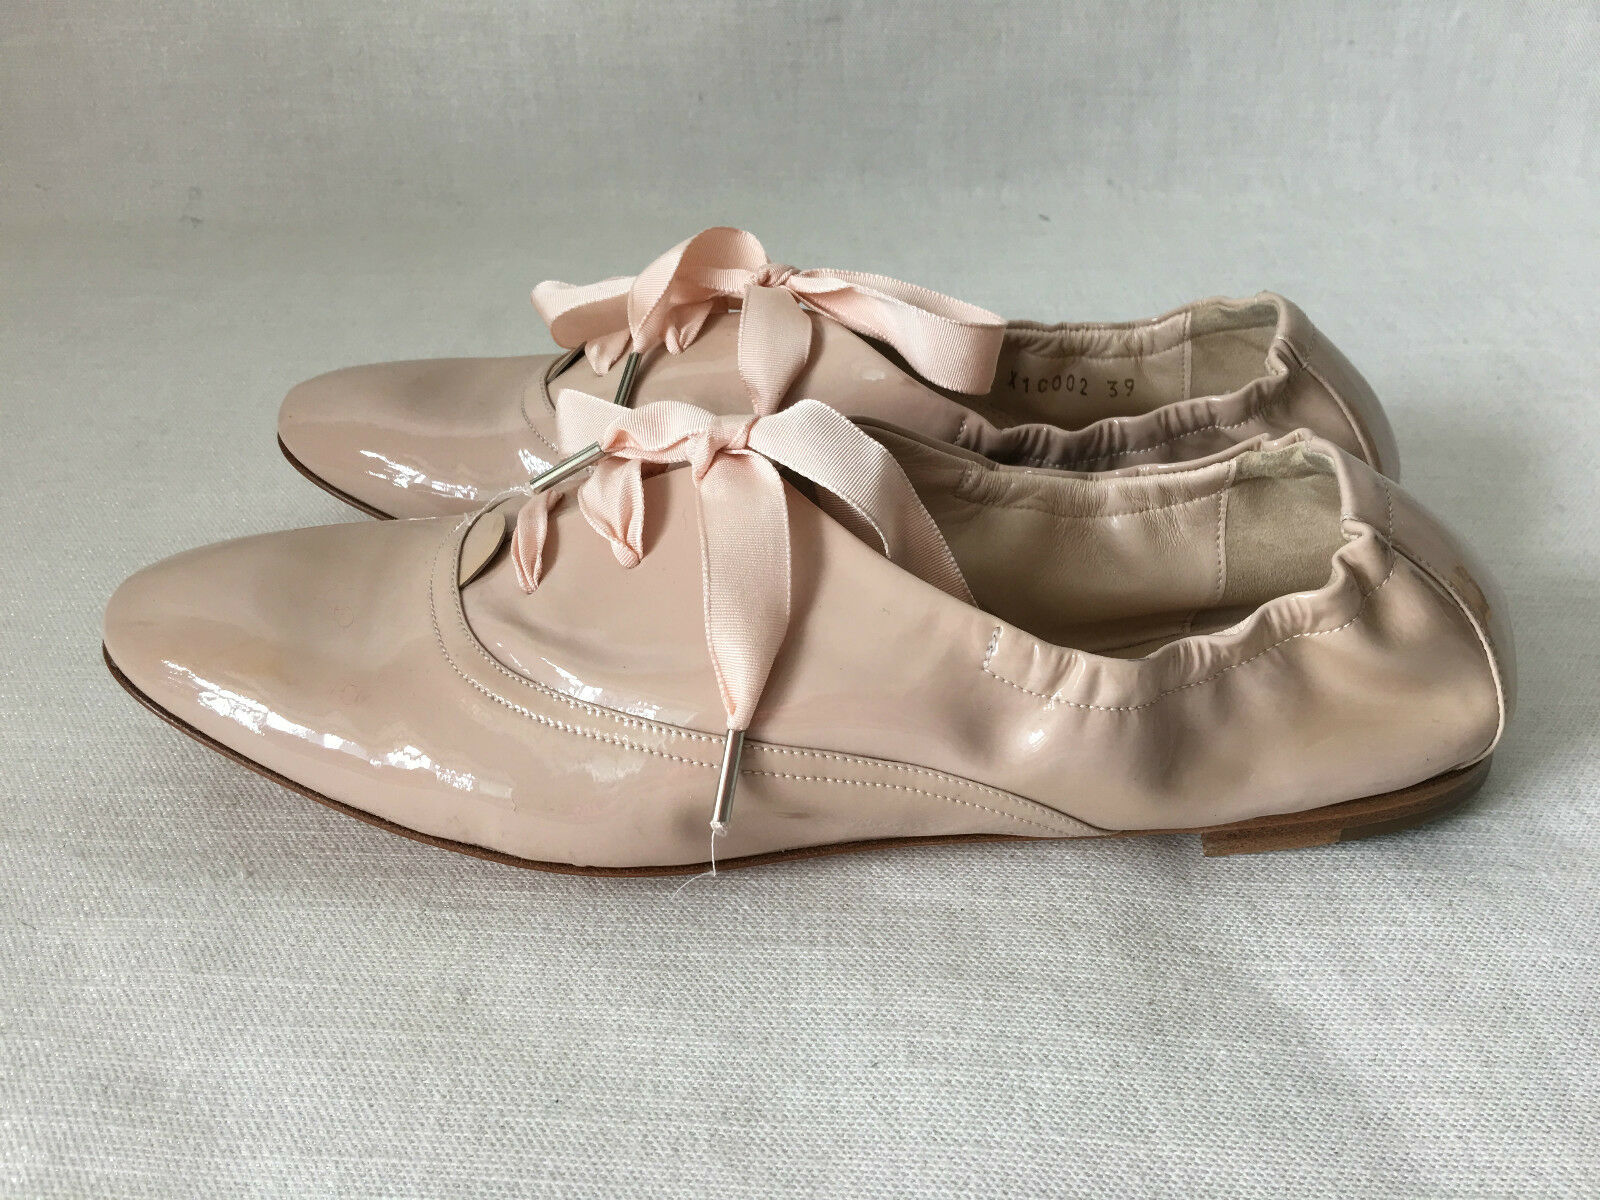 GIORGIO ARMANI NUDE Size PATENT LEATHER FLATS SHOES. Size NUDE 39. MADE IN ITALY 18384c